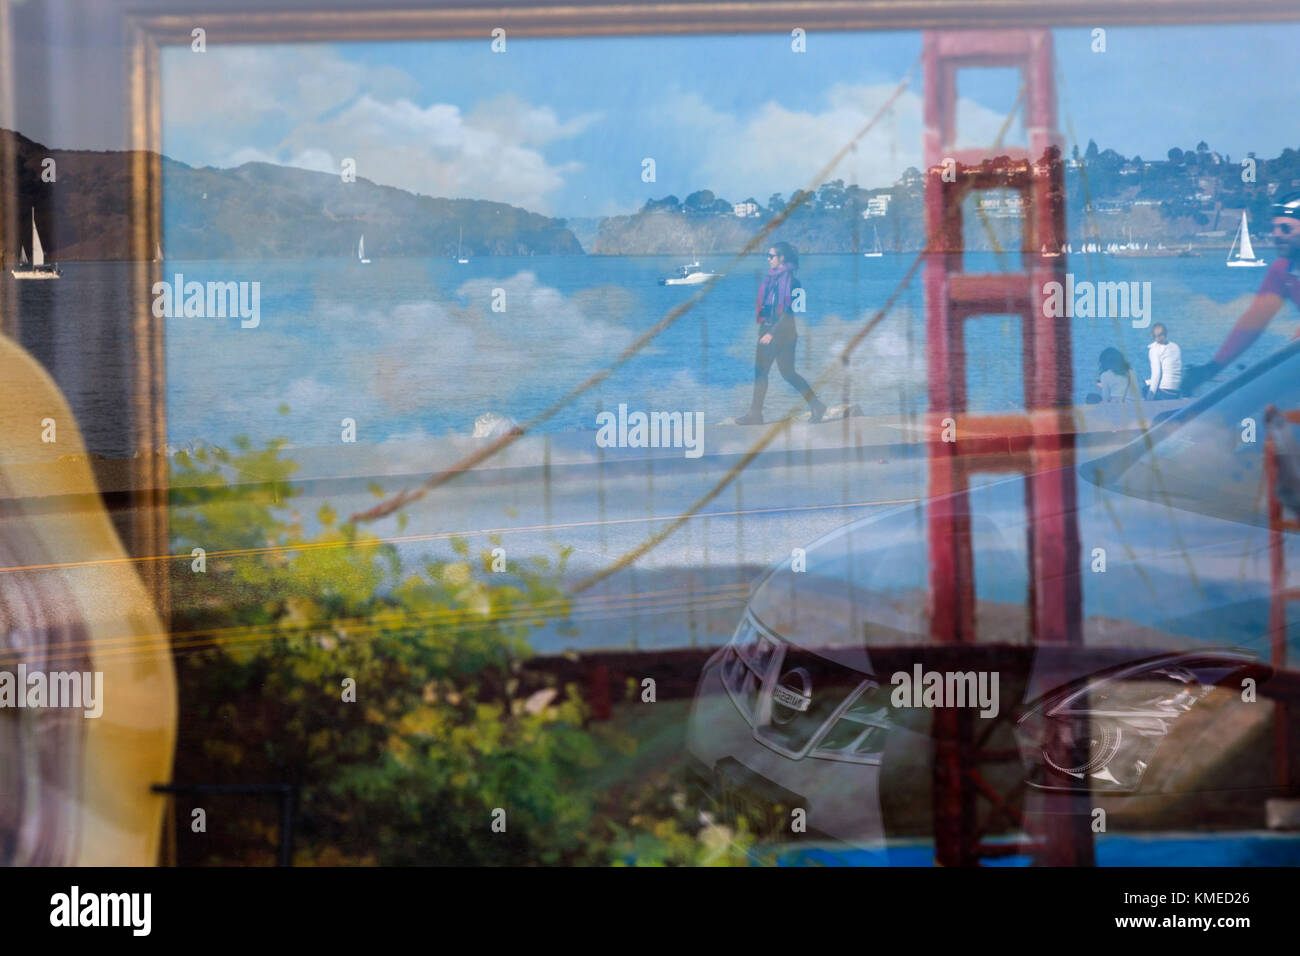 La riflessione del Golden Gate bridge nella finestra,sausalito,California , Stati Uniti Immagini Stock